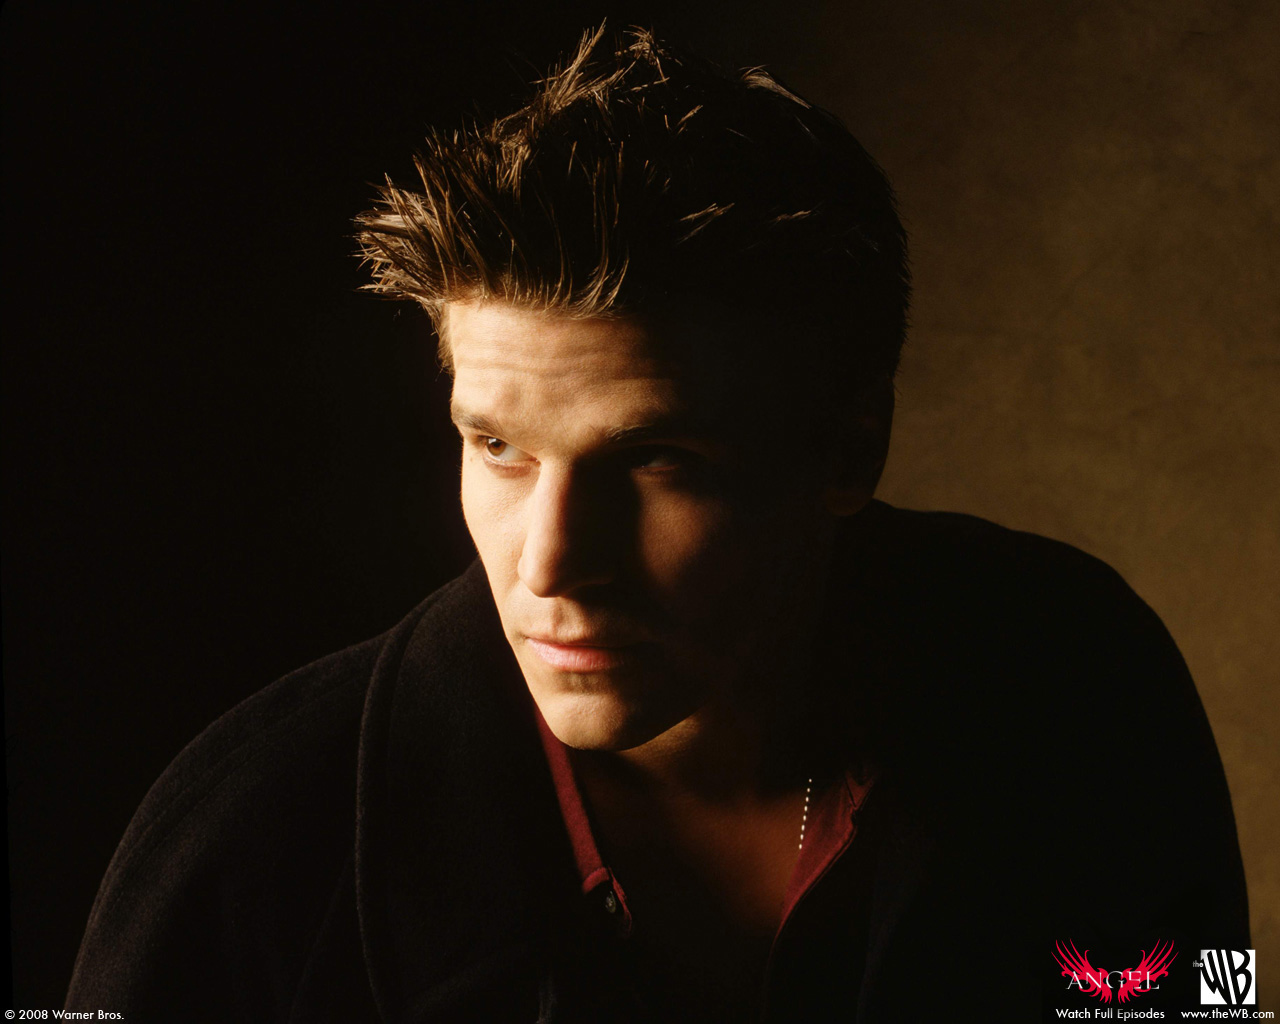 David Boreanaz as the Vampire